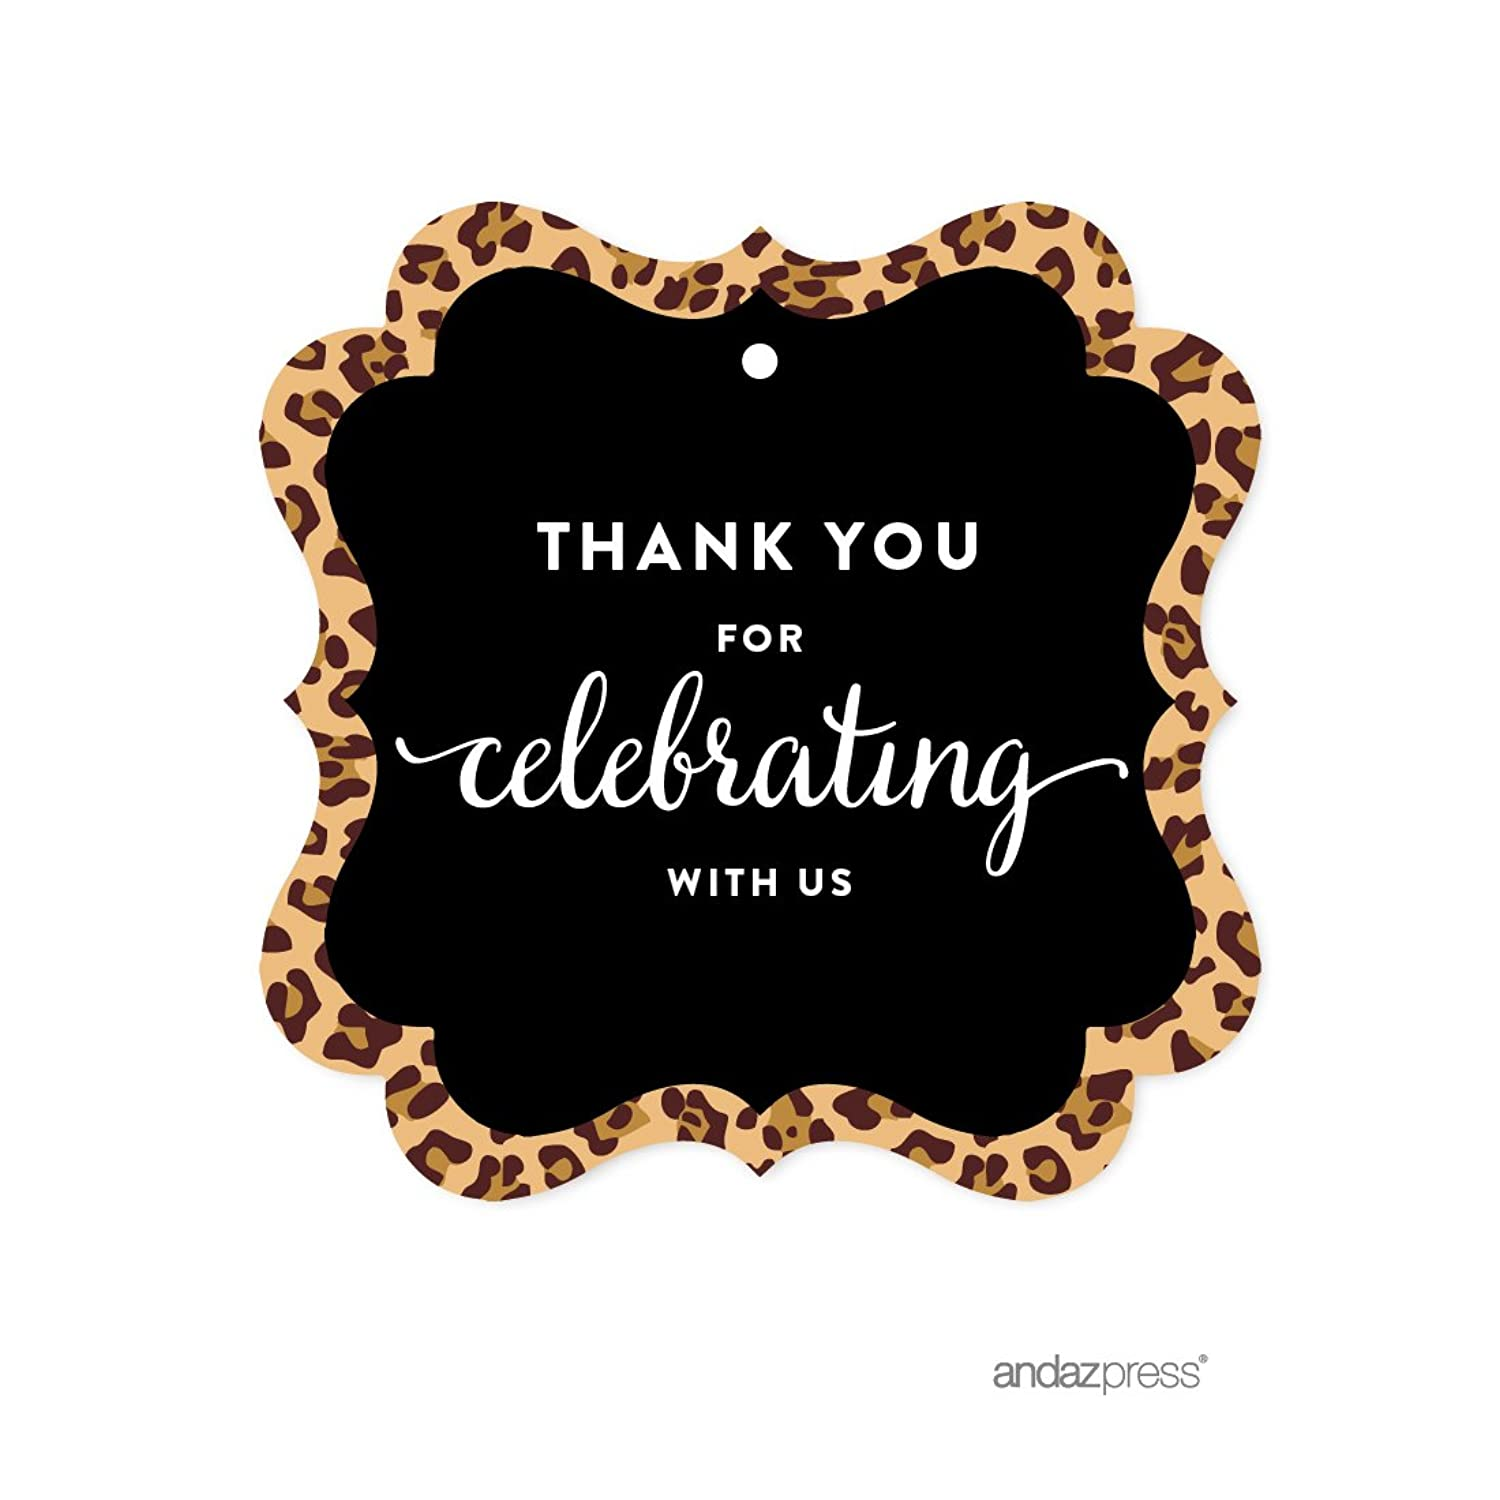 Andaz Press Birthday Fancy Frame Gift Tags, Thank You for Celebrating with Us, Leopard Cheetah Print, 24-Pack, for Gifts and Party Favors